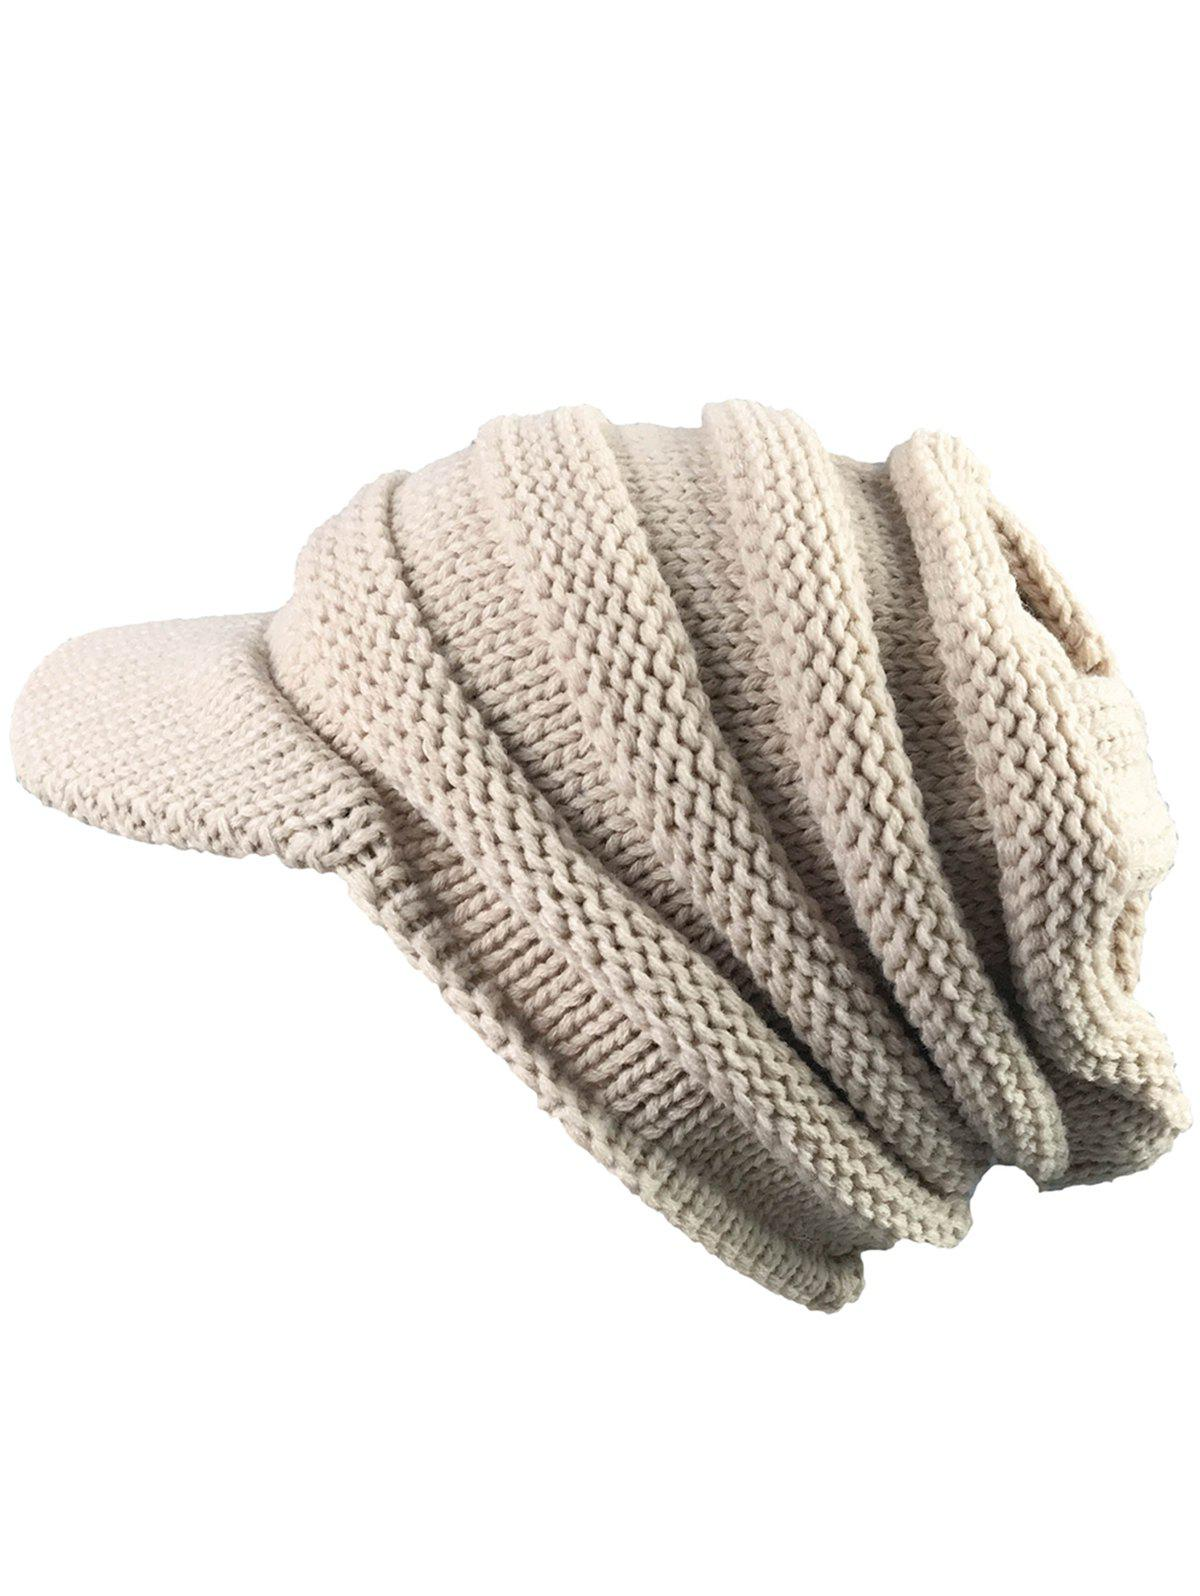 Vintage Striped Pattern Ribbed Knit Hat with BrimACCESSORIES<br><br>Color: BEIGE; Hat Type: Skullies Beanie; Group: Adult; Gender: Unisex; Style: Fashion; Pattern Type: Striped; Material: Acrylic; Weight: 0.1000kg; Package Contents: 1 x Hat;